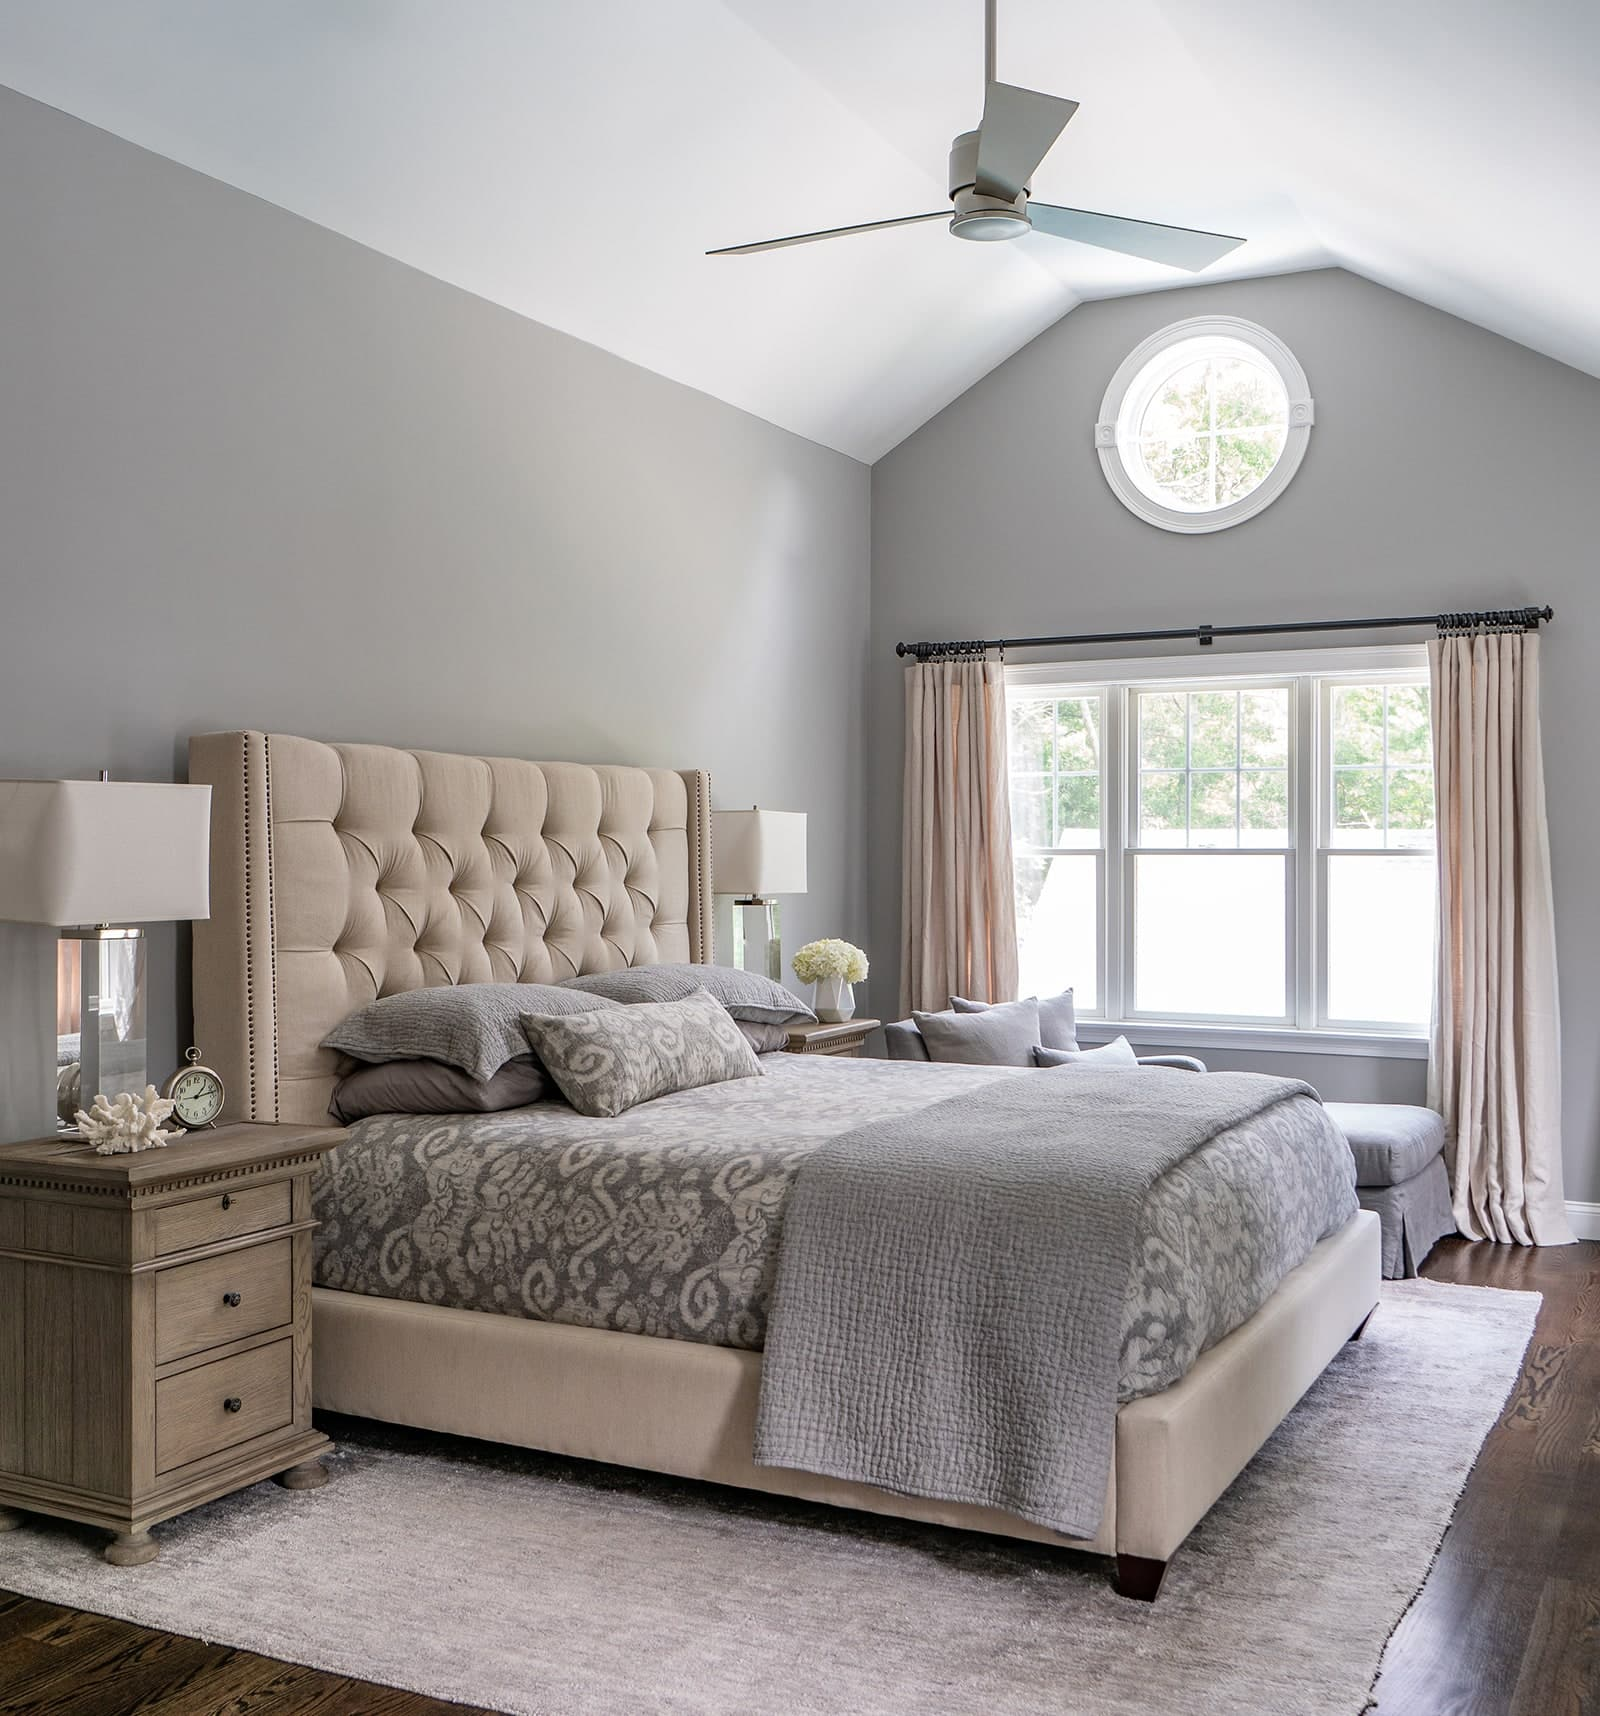 North Shore Tranquility Interiors Middleton MA Bedroom